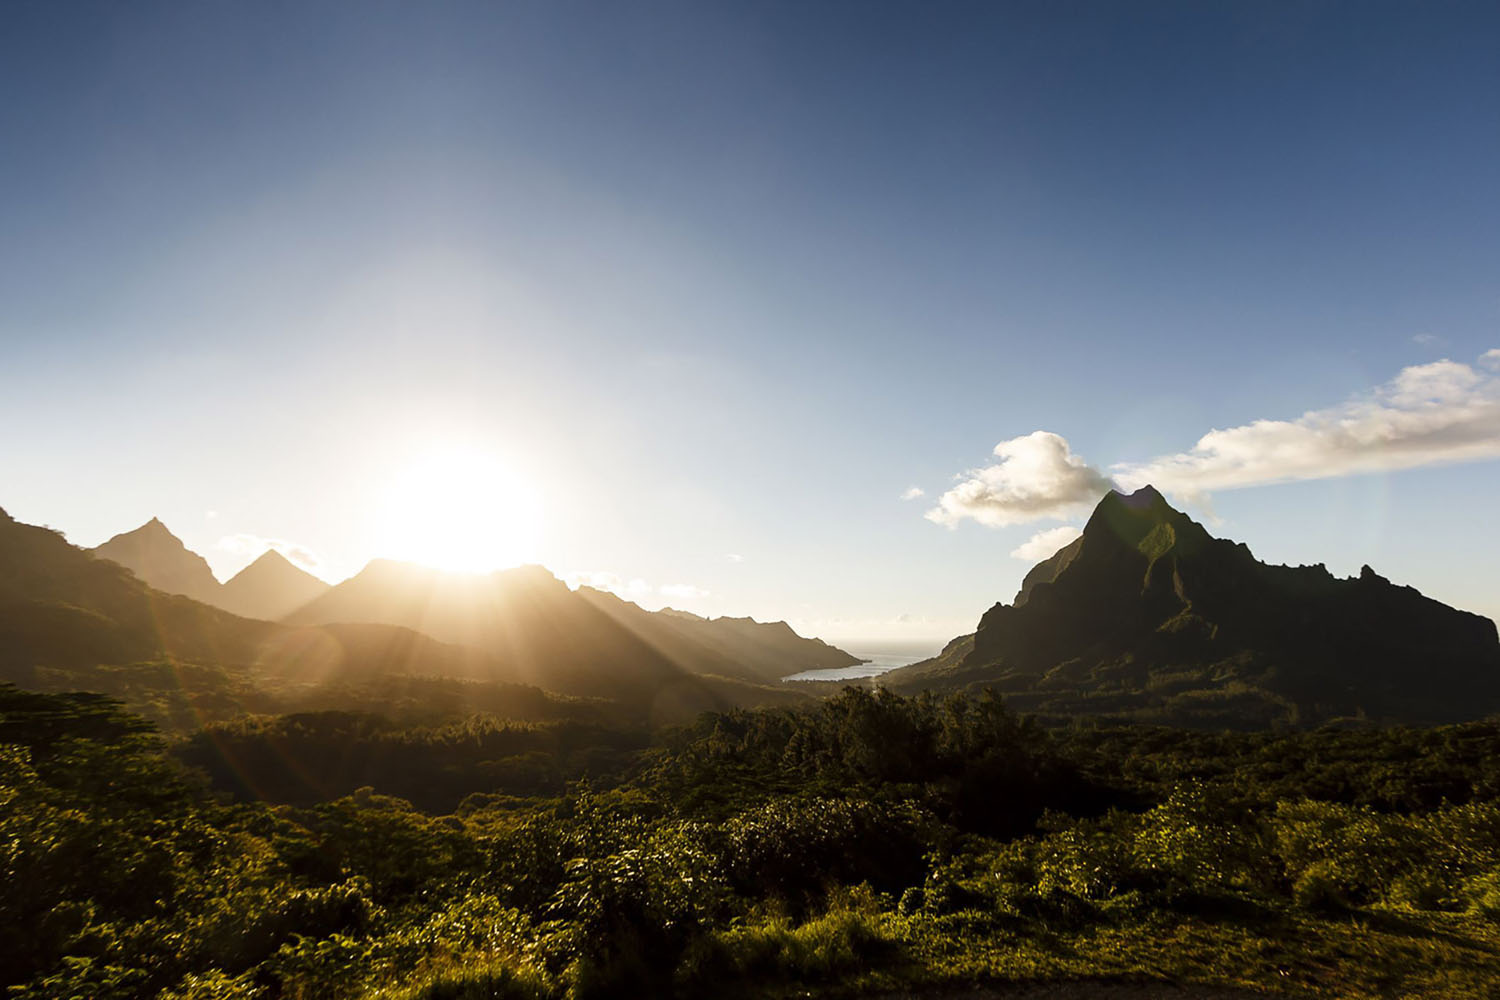 A sunset view from Belvedere Lookout in Moorea, French Polynesia